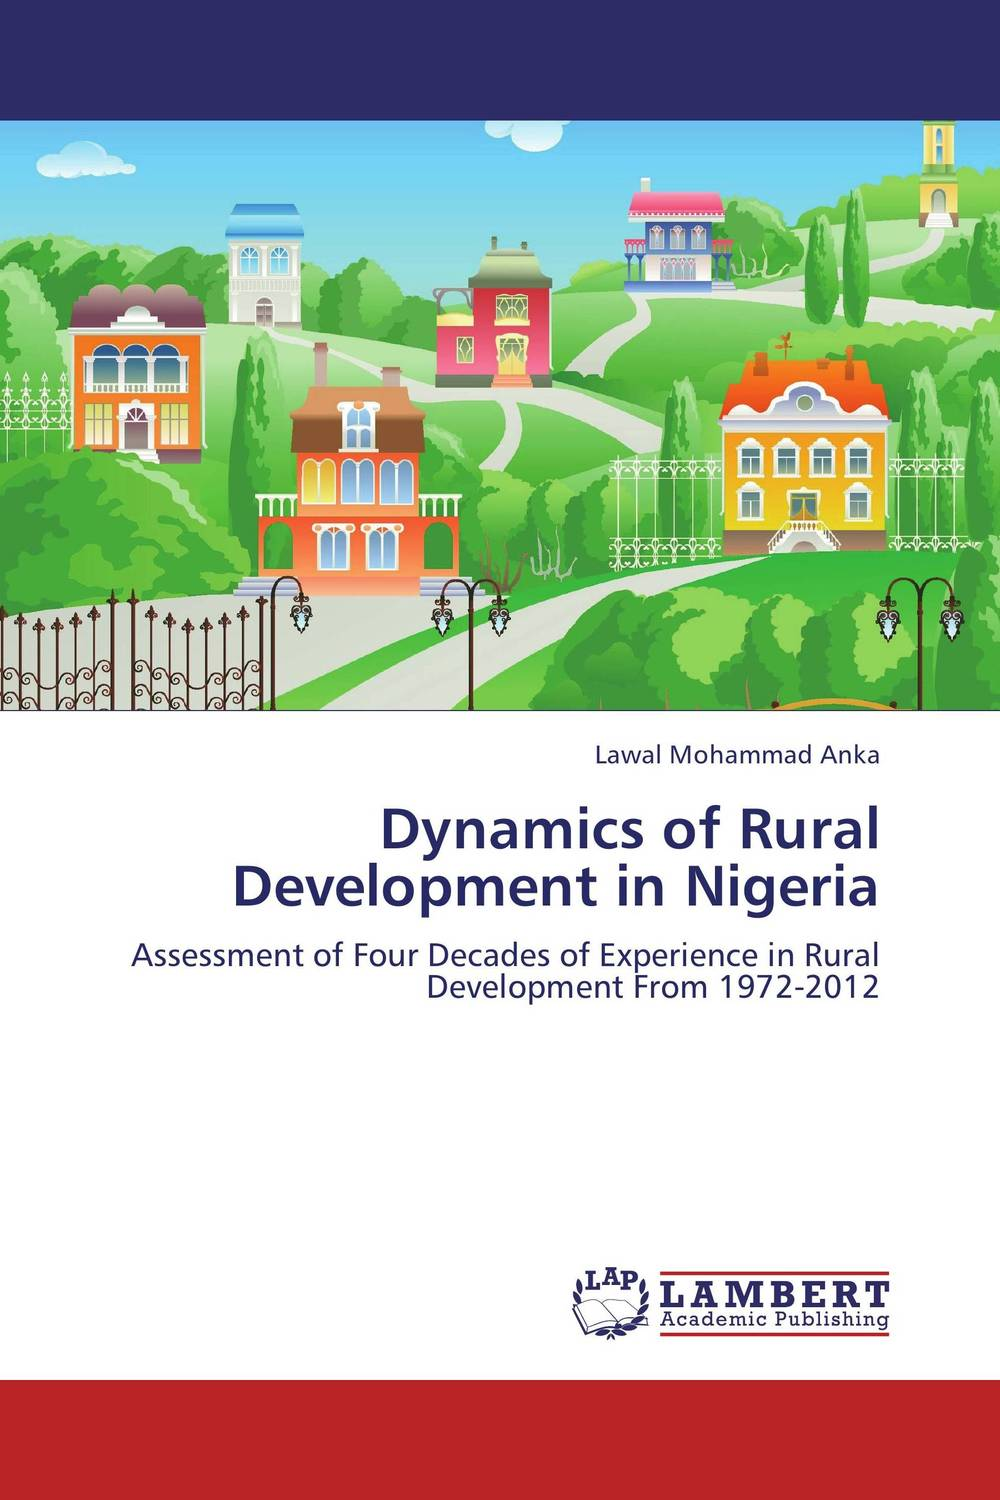 Dynamics of Rural Development in Nigeria